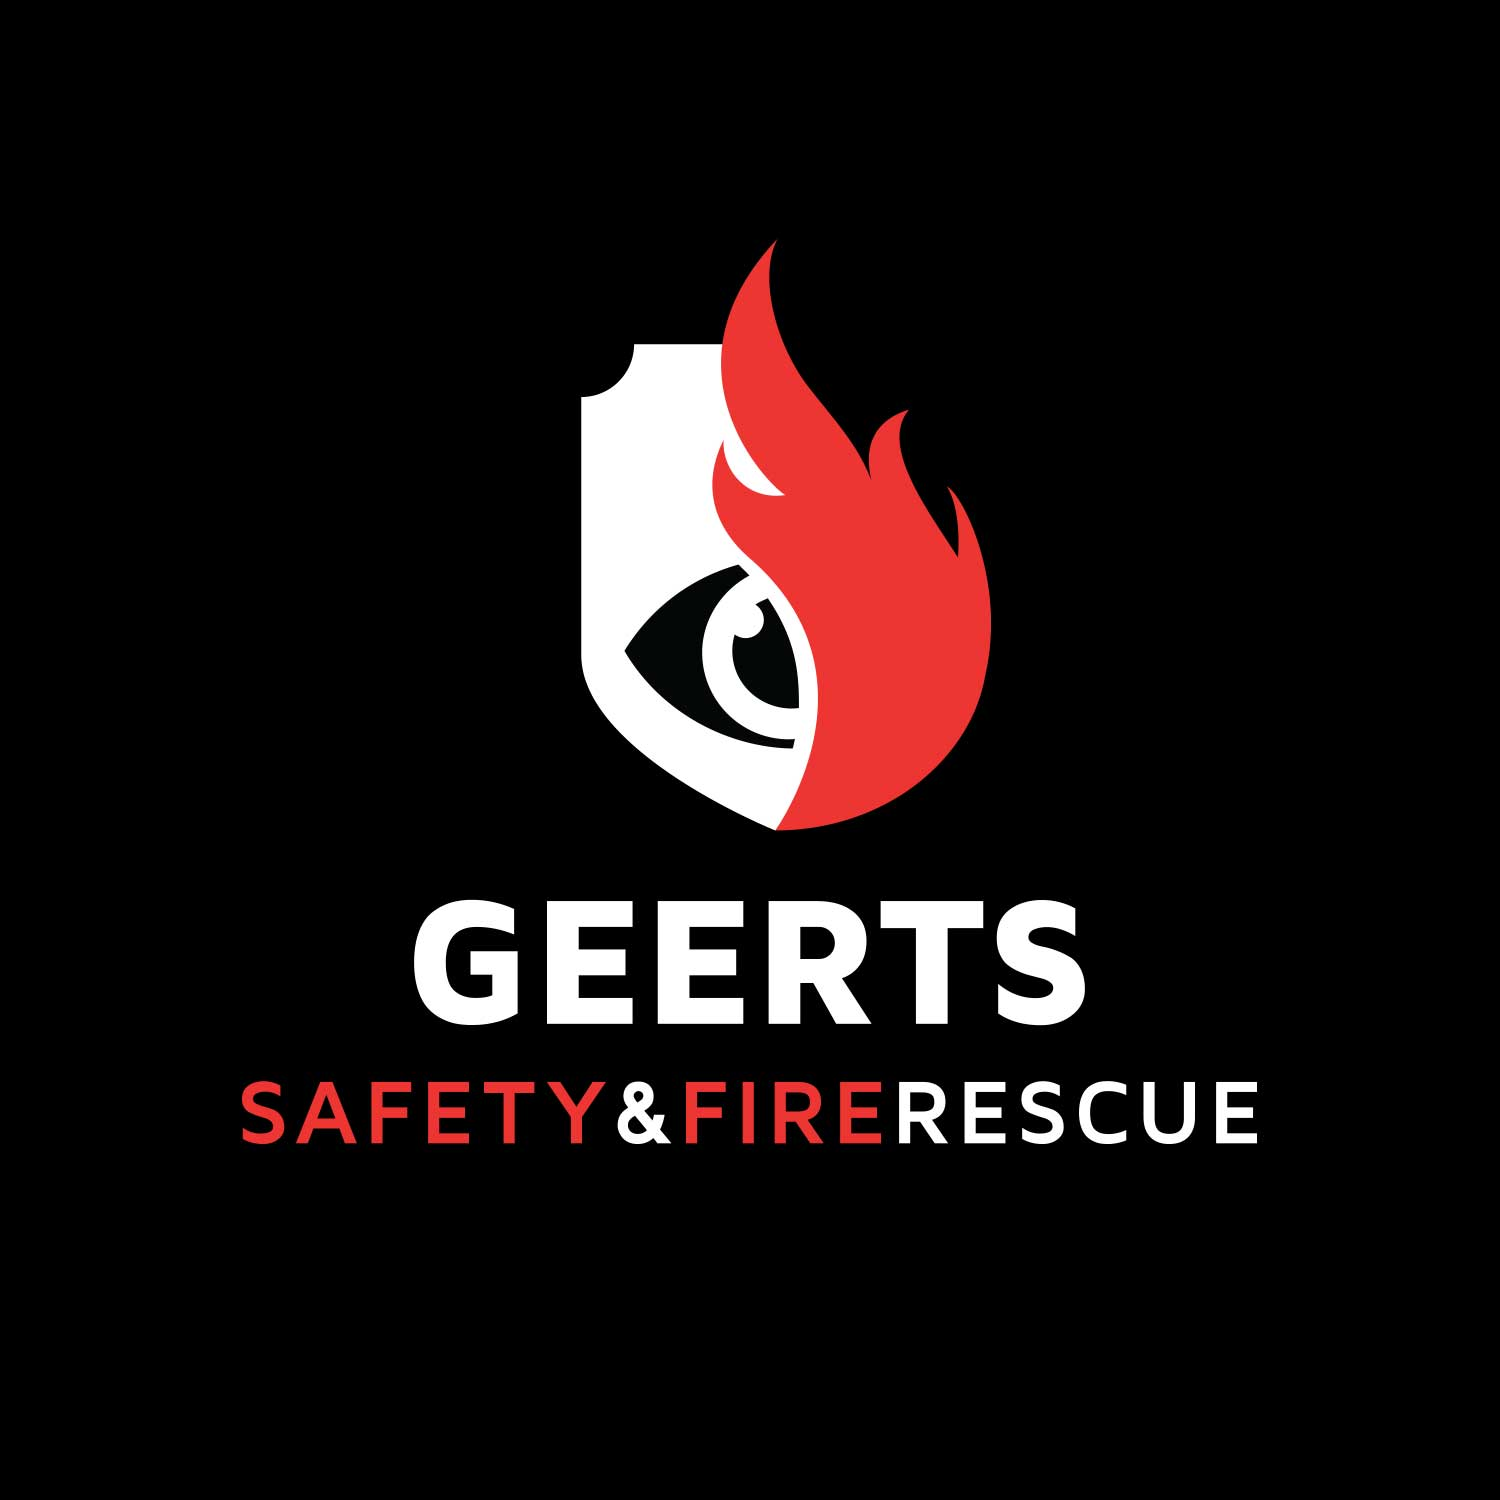 Geerts Safety & Fire rescue